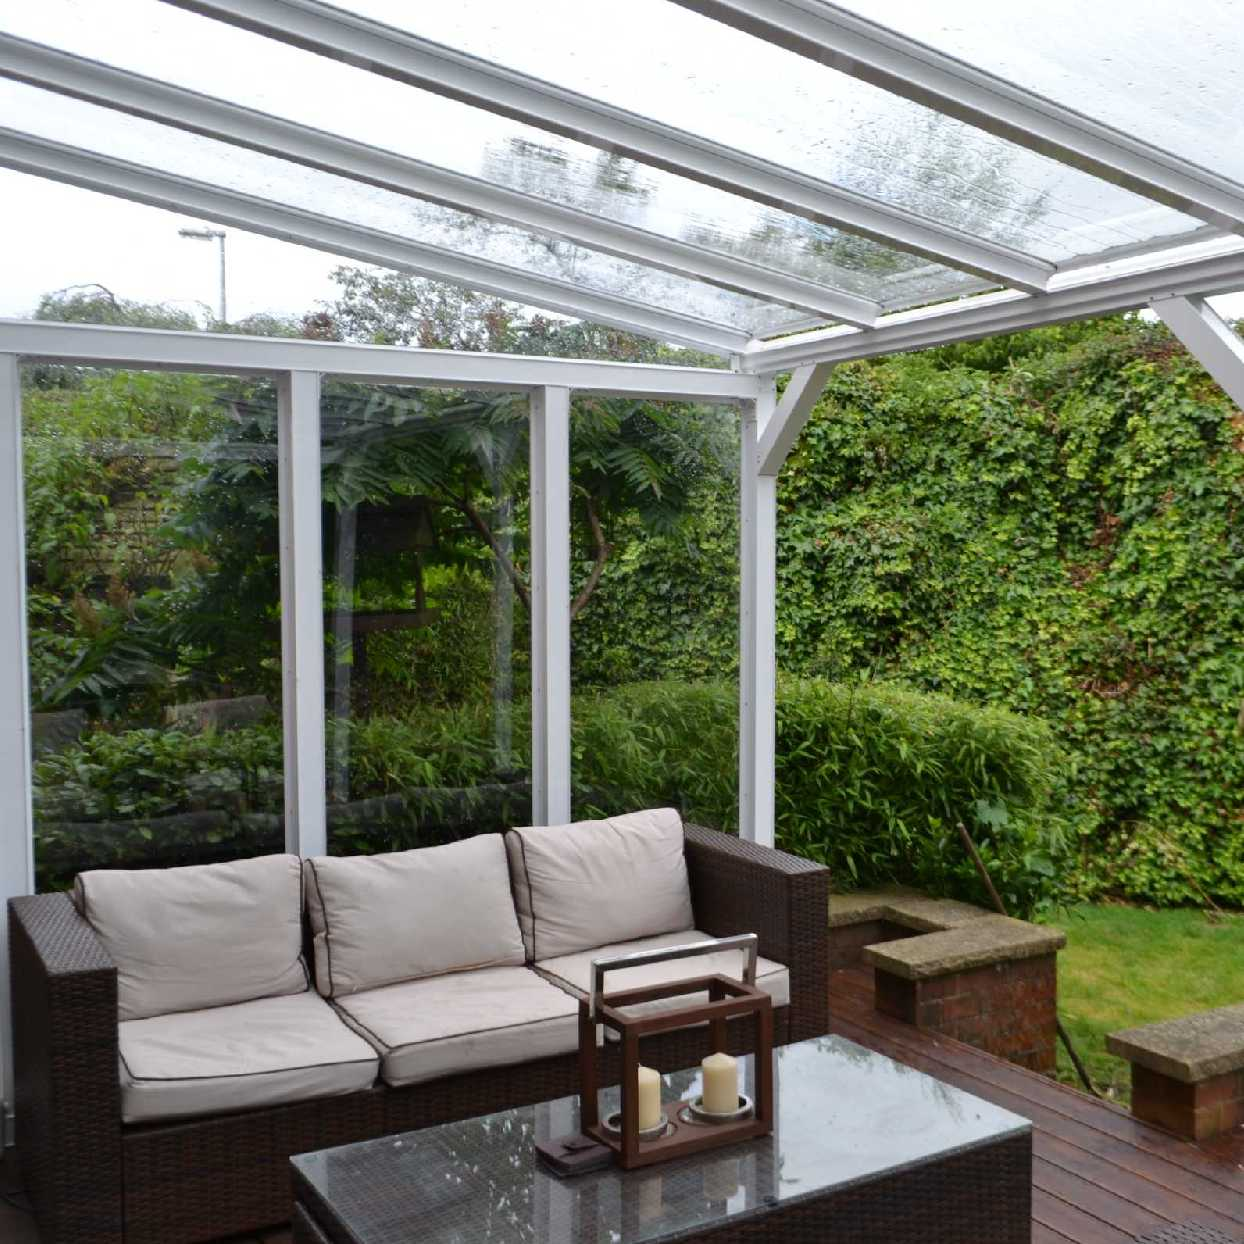 Omega Smart Lean-To Canopy with 6mm Glass Clear Plate Polycarbonate Glazing - 2.1m (W) x 1.5m (P), (2) Supporting Posts